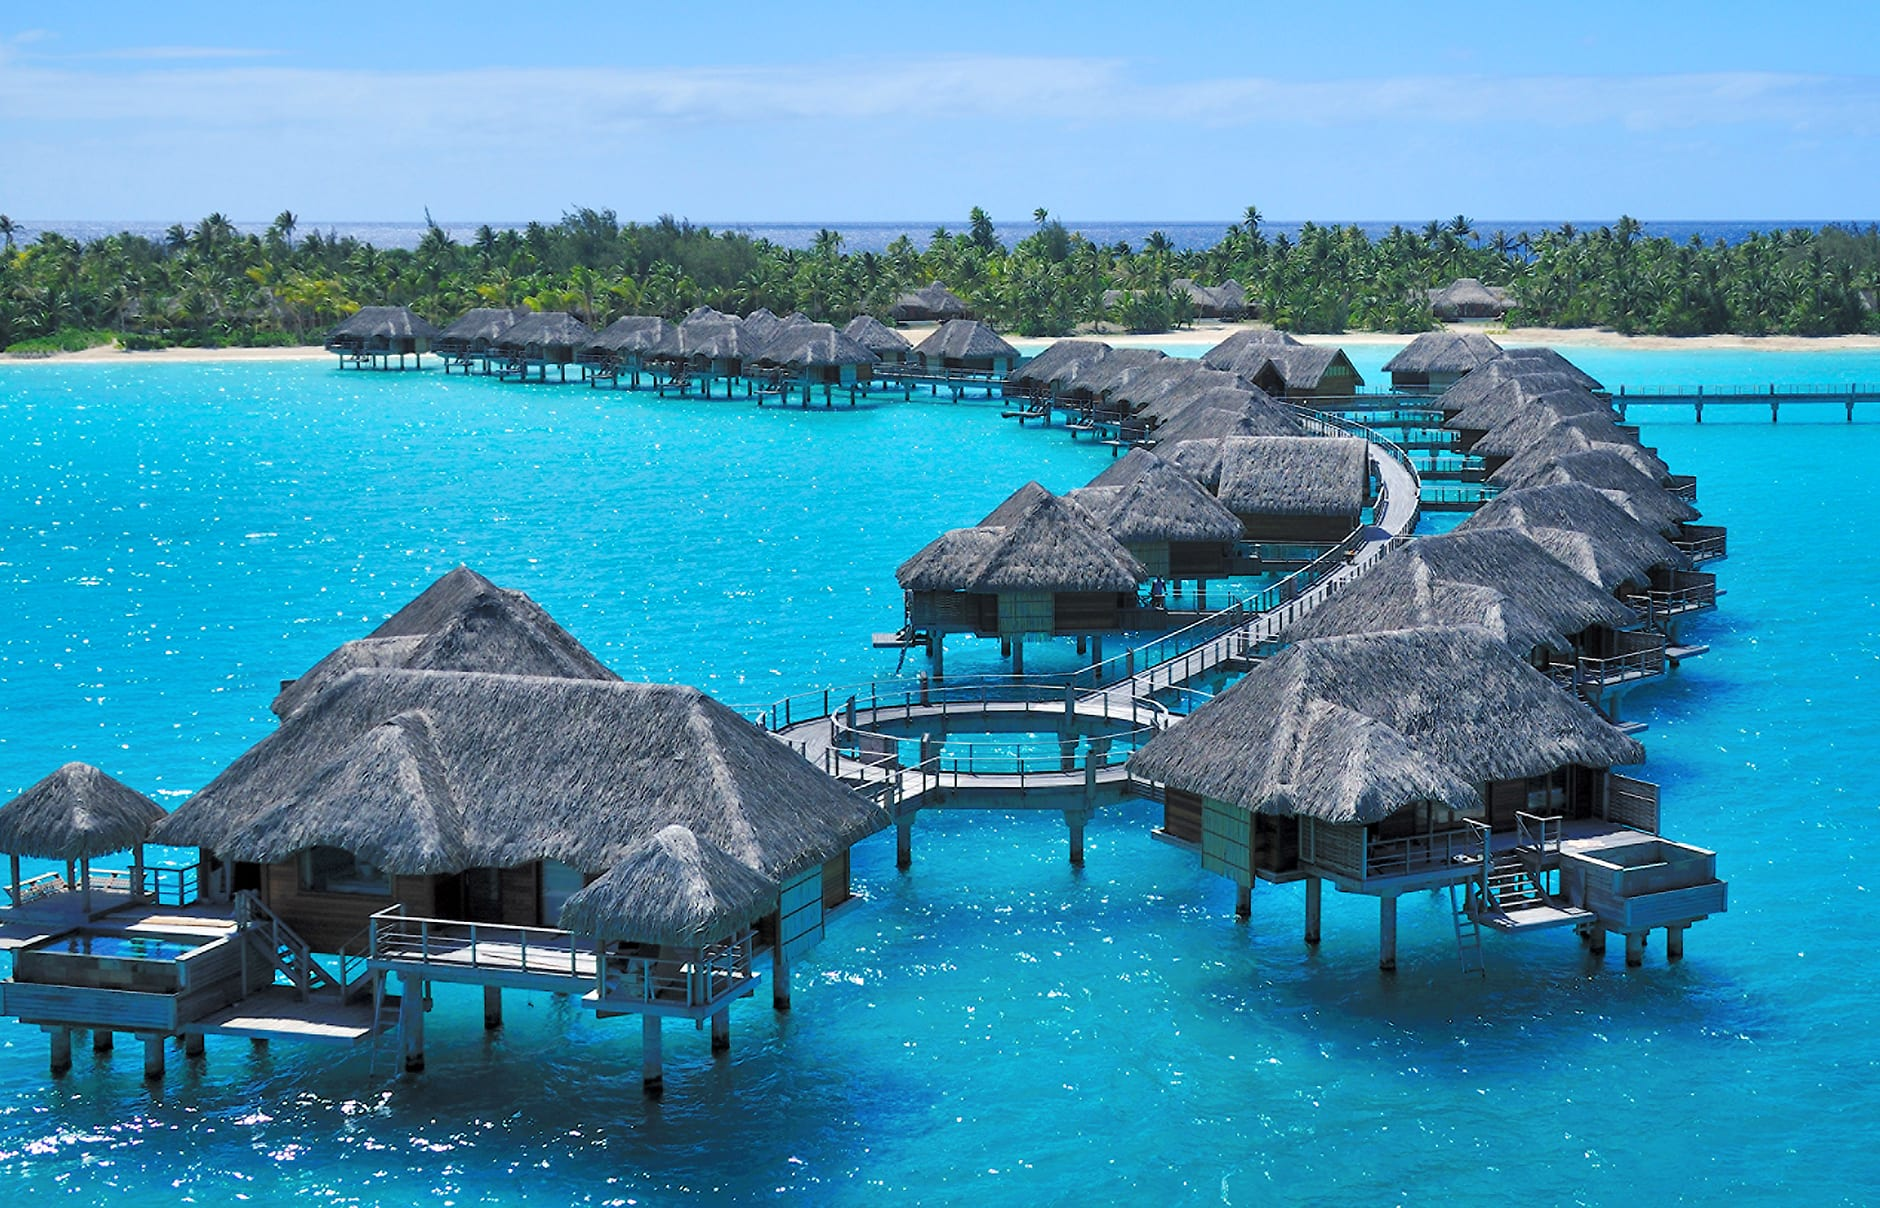 Four Seasons Resort Bora Bora, French Polynesia. © Four Seasons Hotels Limited